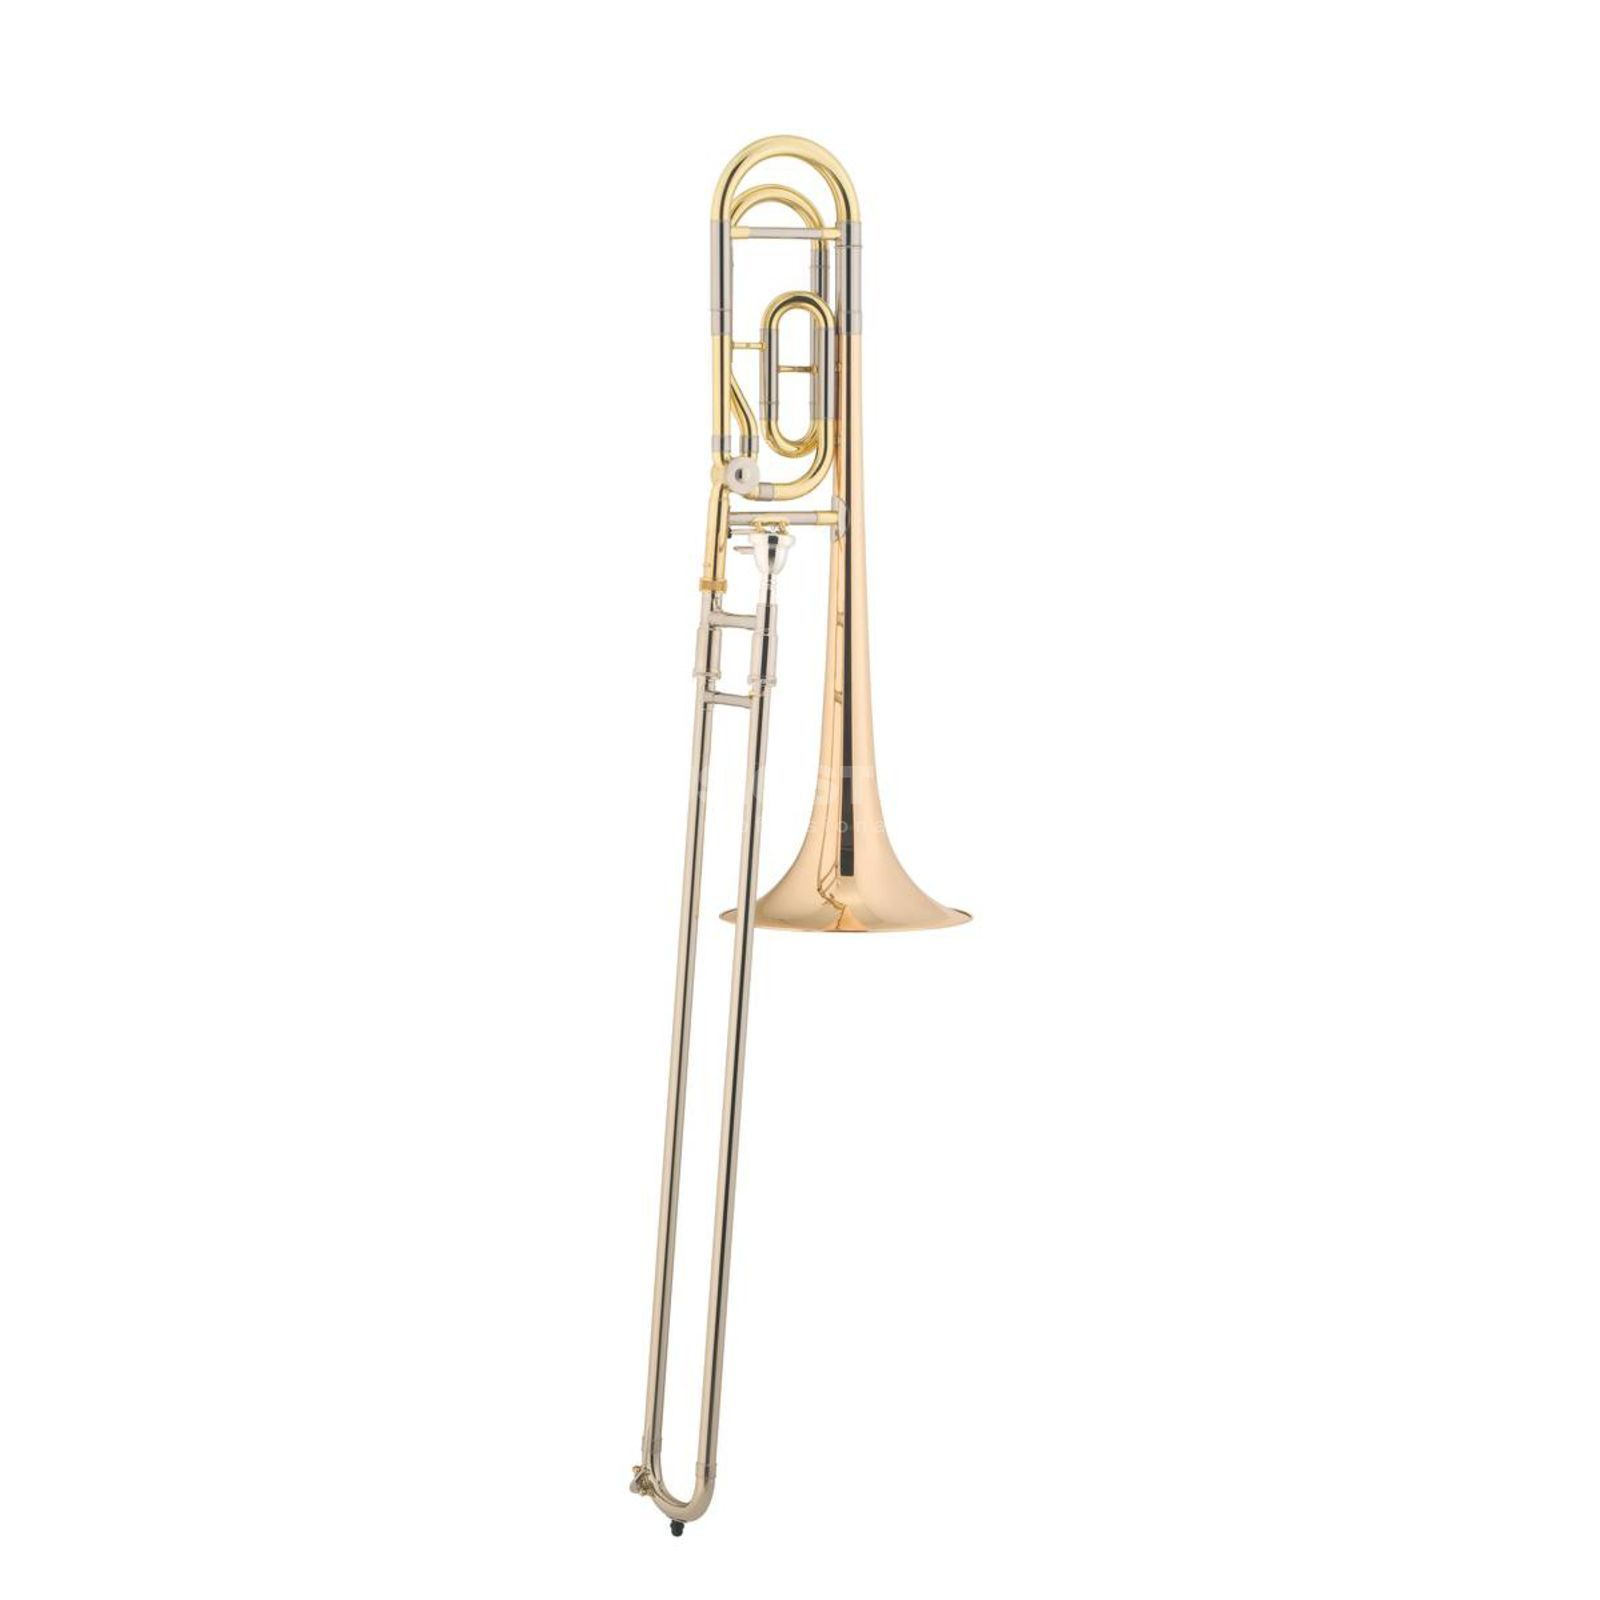 Jupiter JP-636RL-Q Bb/F Tenor Trombone Incl. Case and Accessories Produktbillede